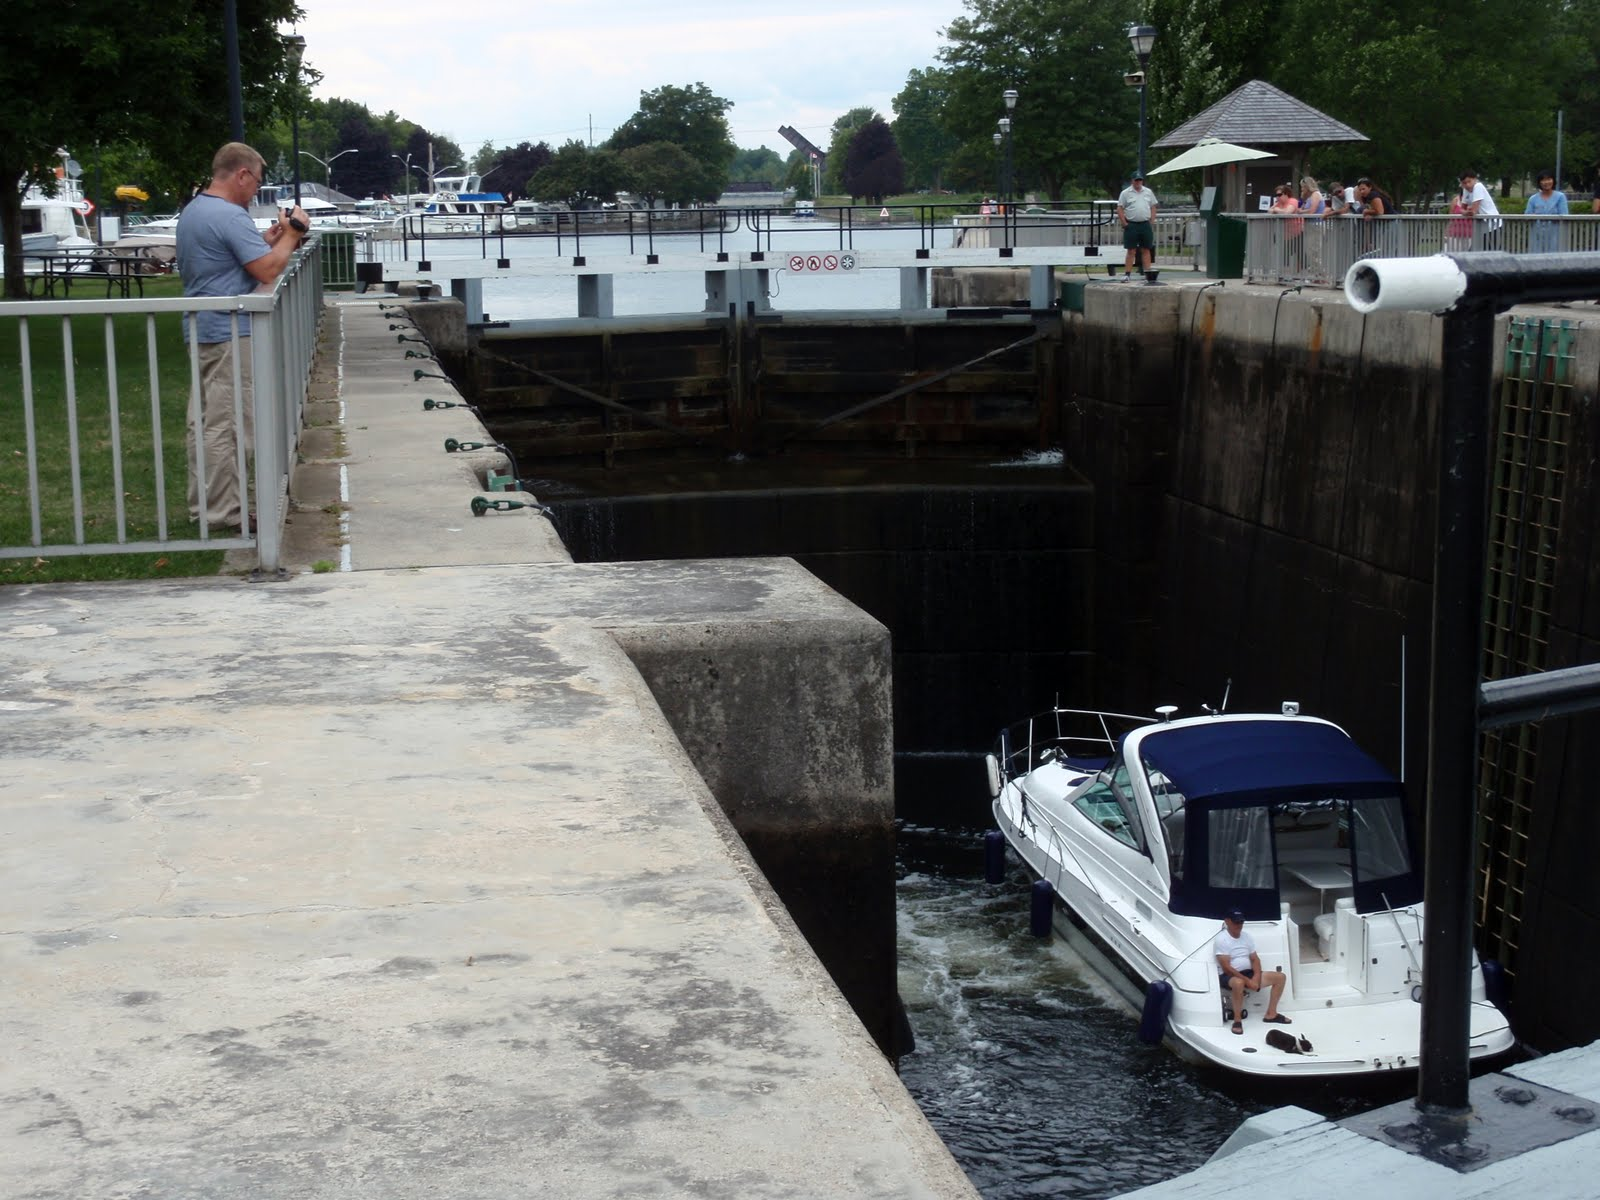 A boat going through one of many locks.